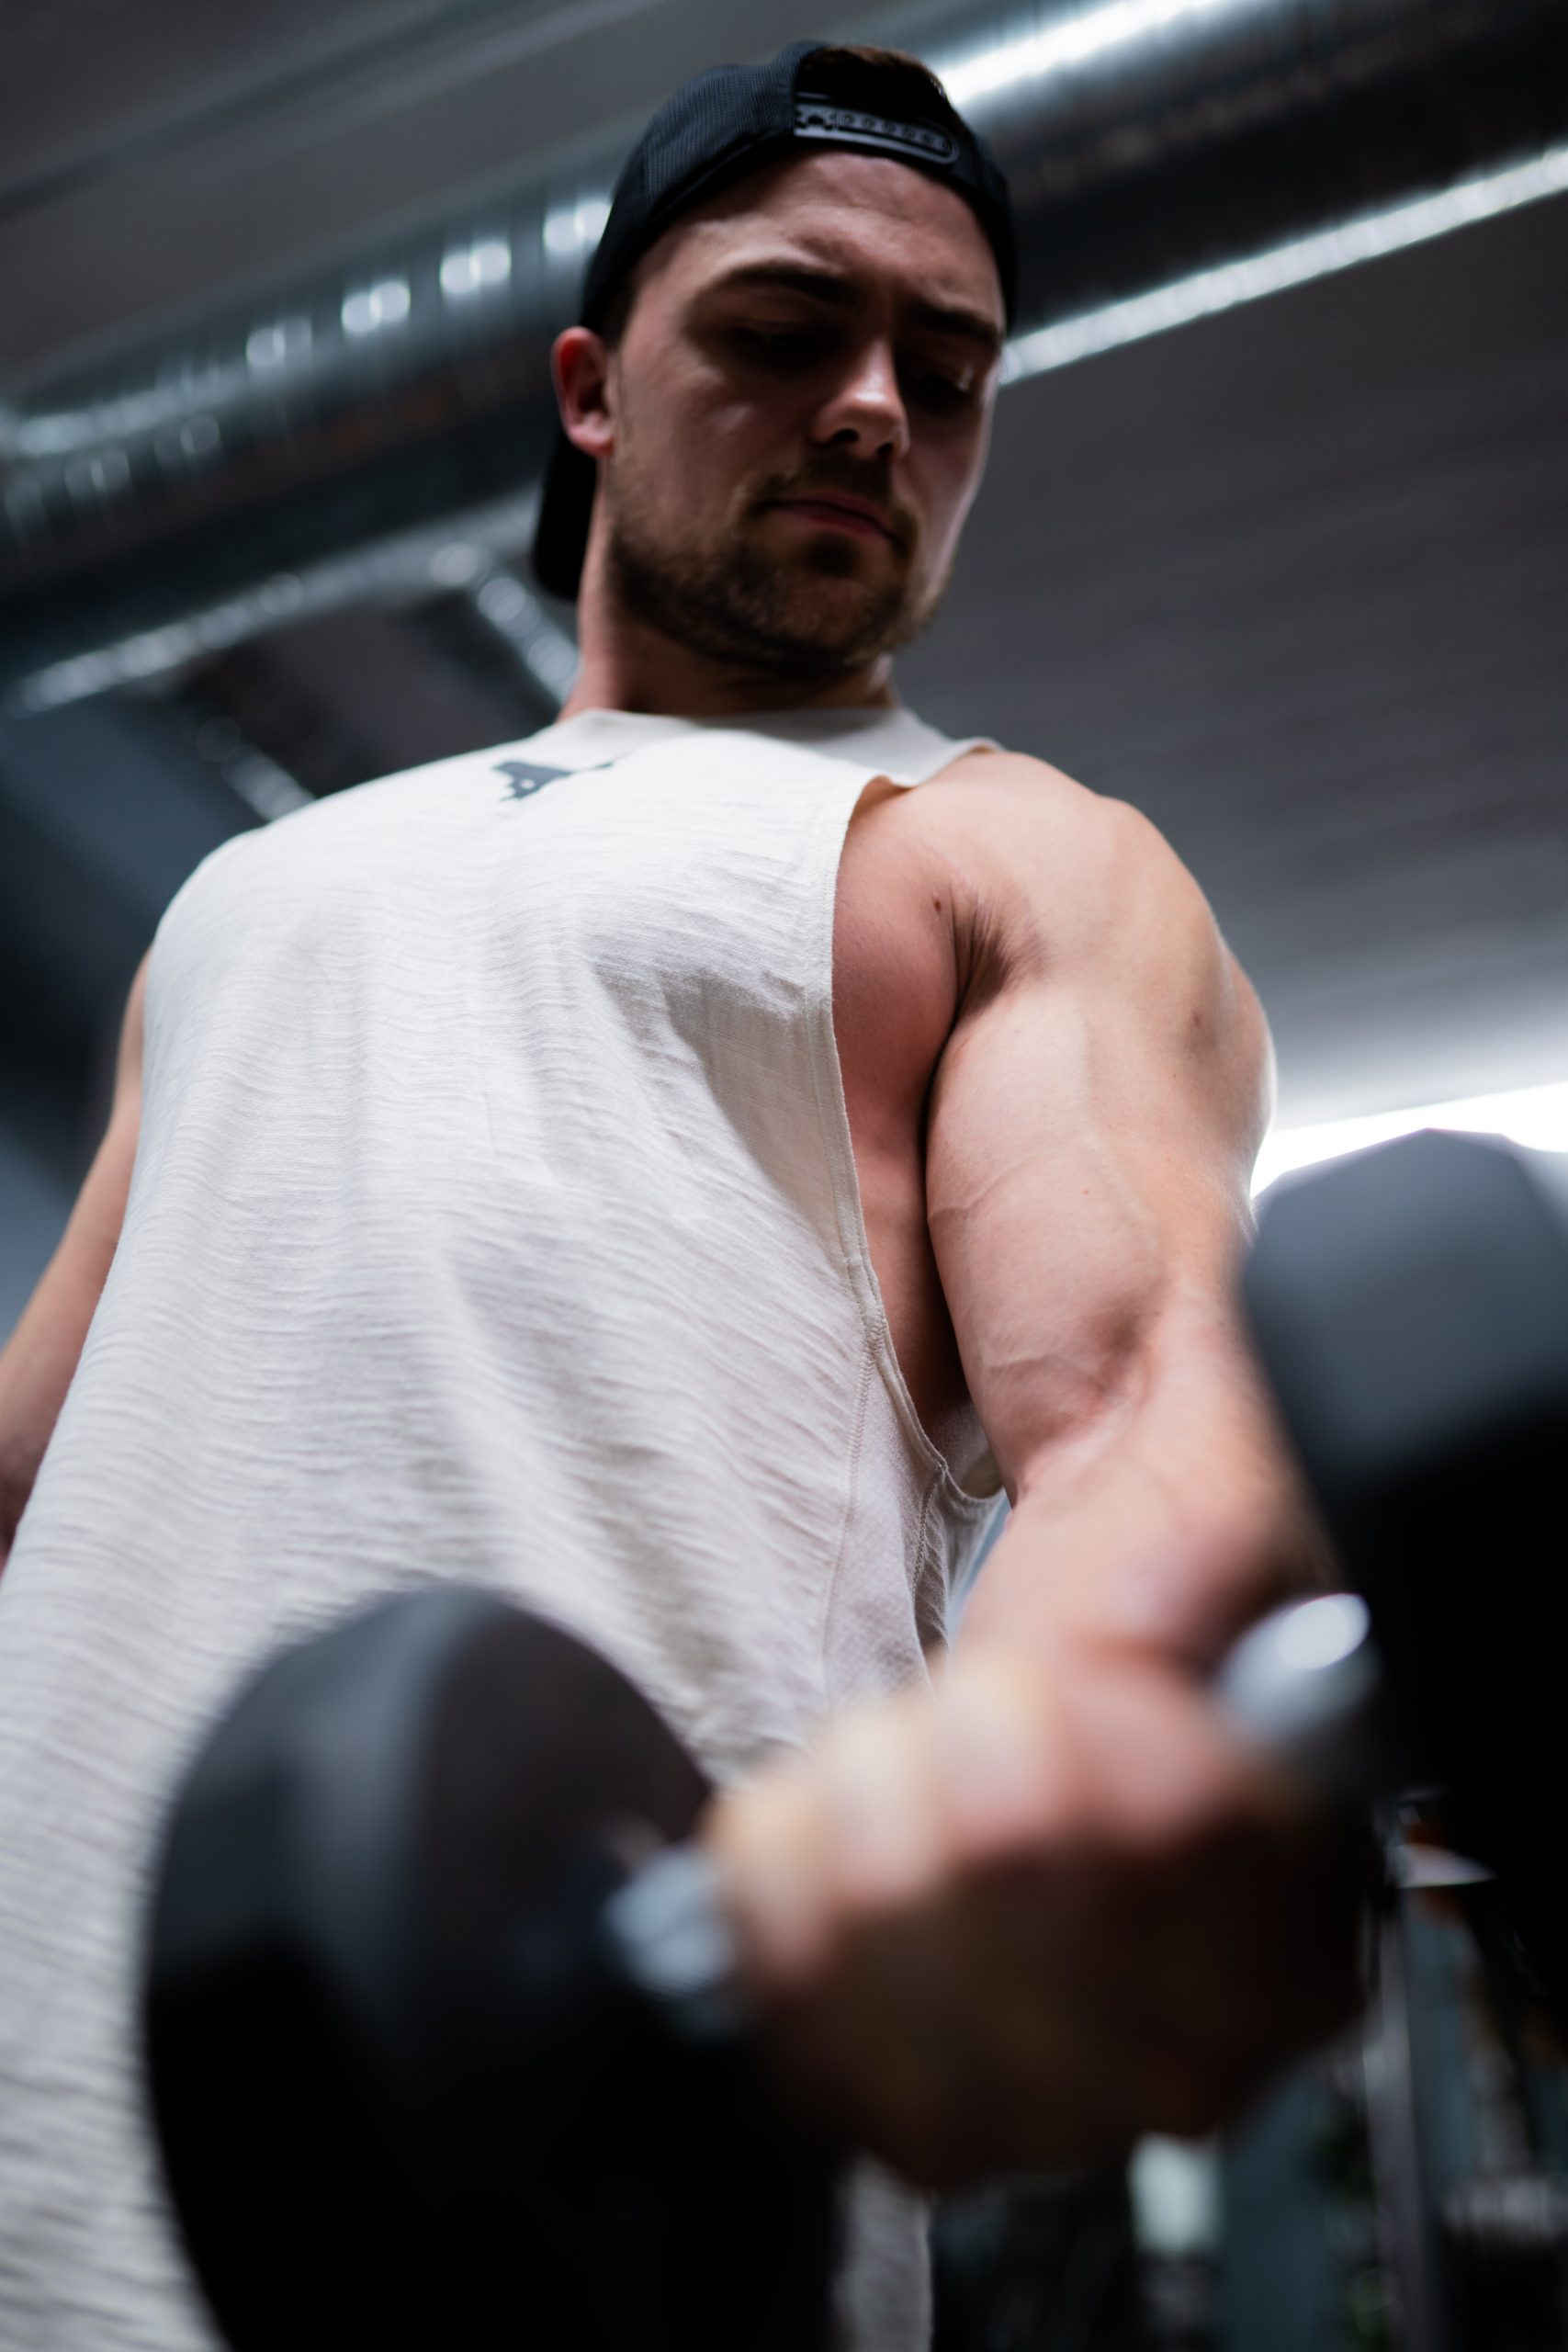 The 5 keys to muscle growth that you should know